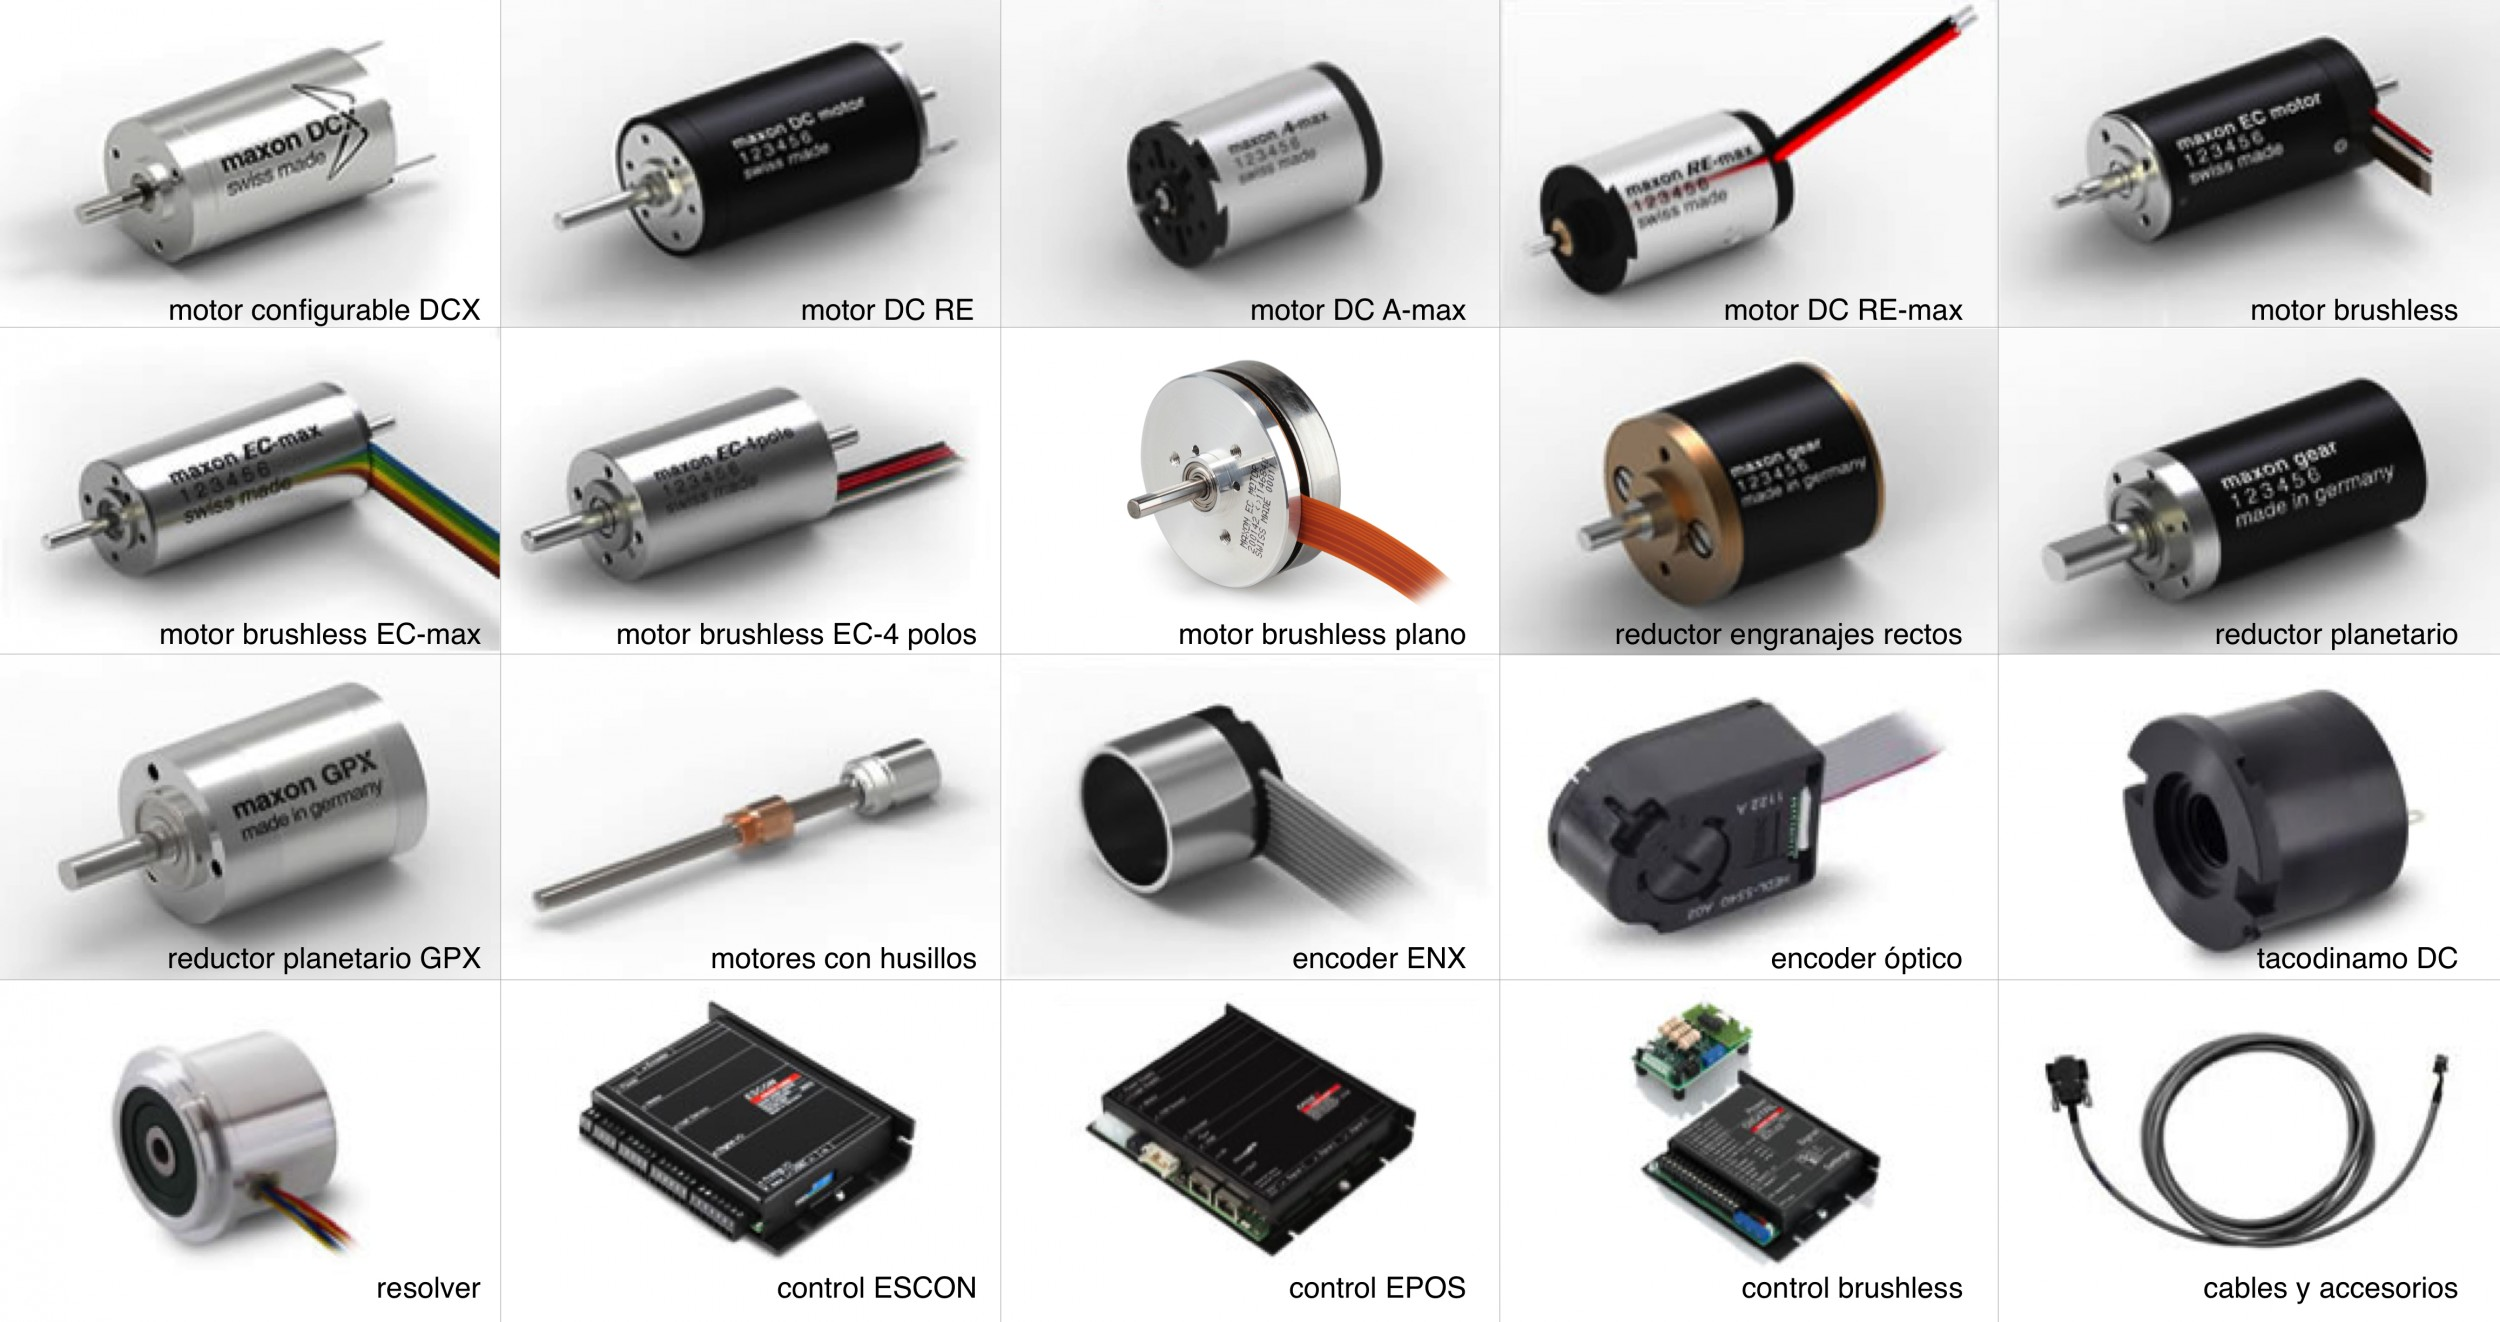 Start Vs Stall Torque Brushed Brushless Dc Motors also Watch also Mag ism additionally parison Generator Excitation Systems furthermore Showthread. on brushless dc motor